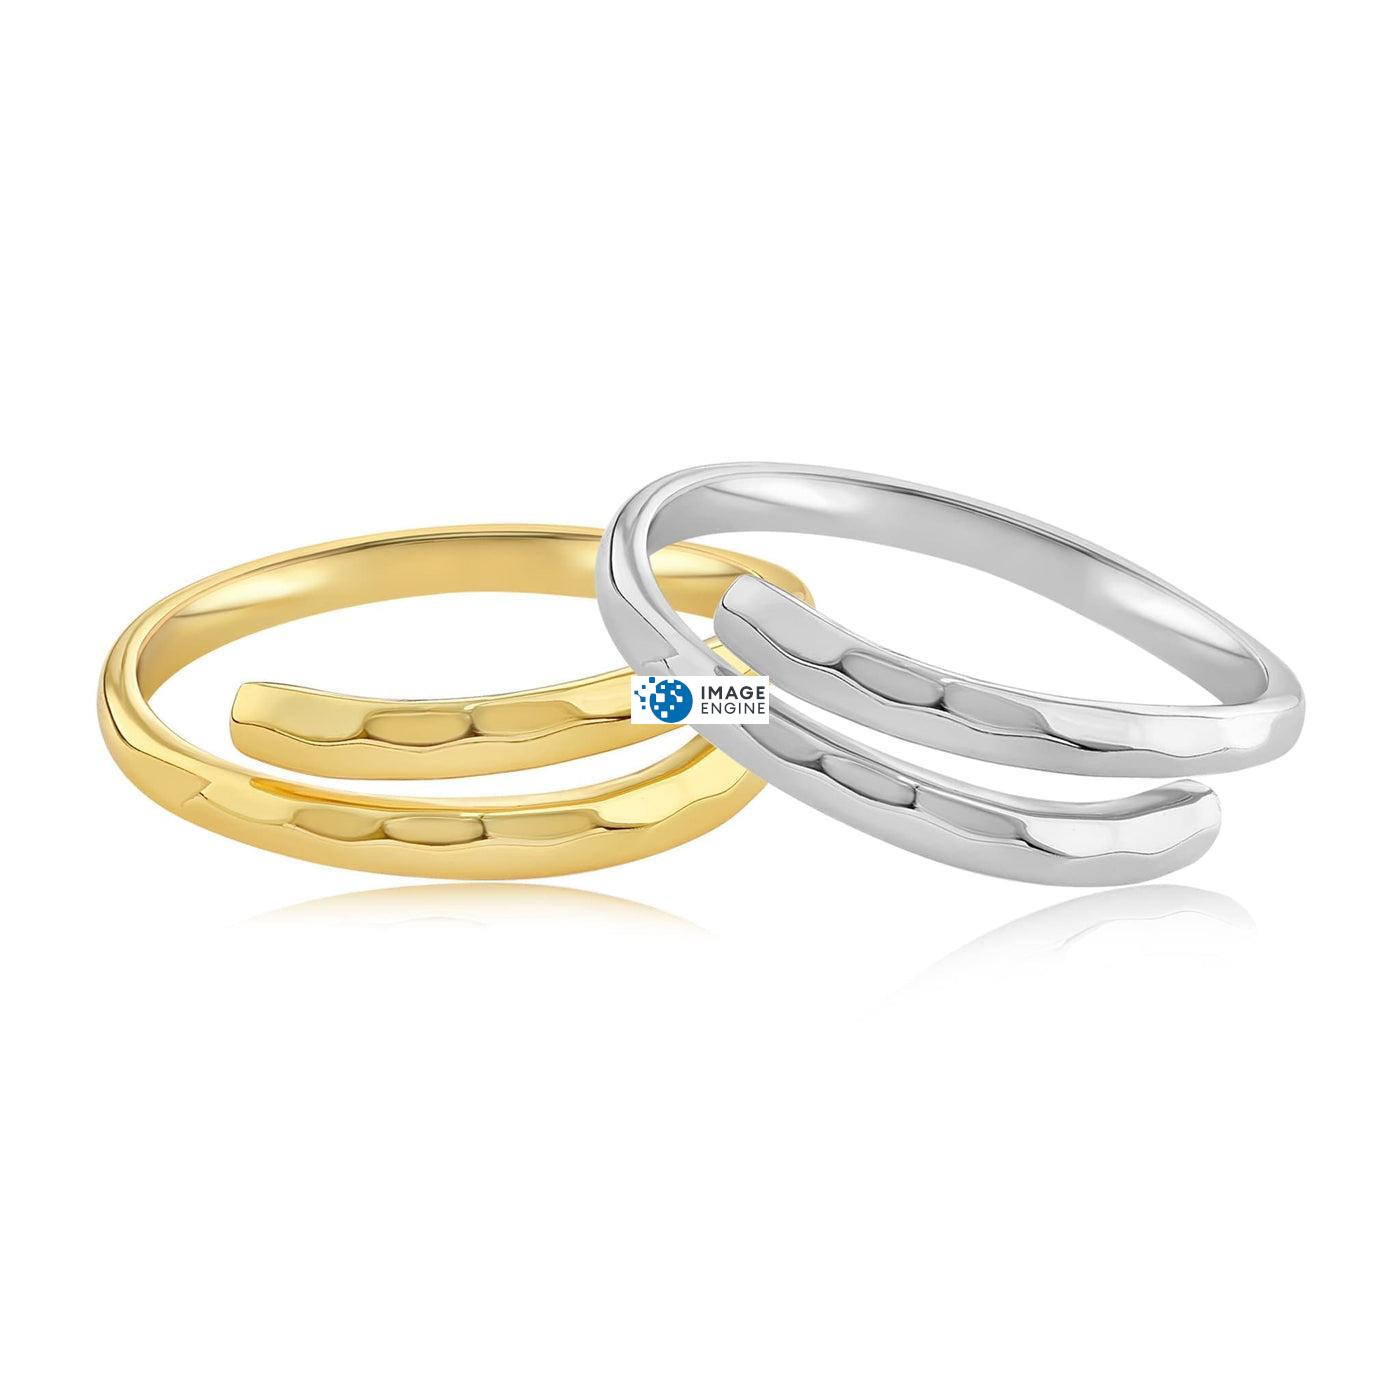 Minimalist Thumb Ring - Front View Side by Side - 18K Yellow Gold Vermeil and 925 Sterling Silver